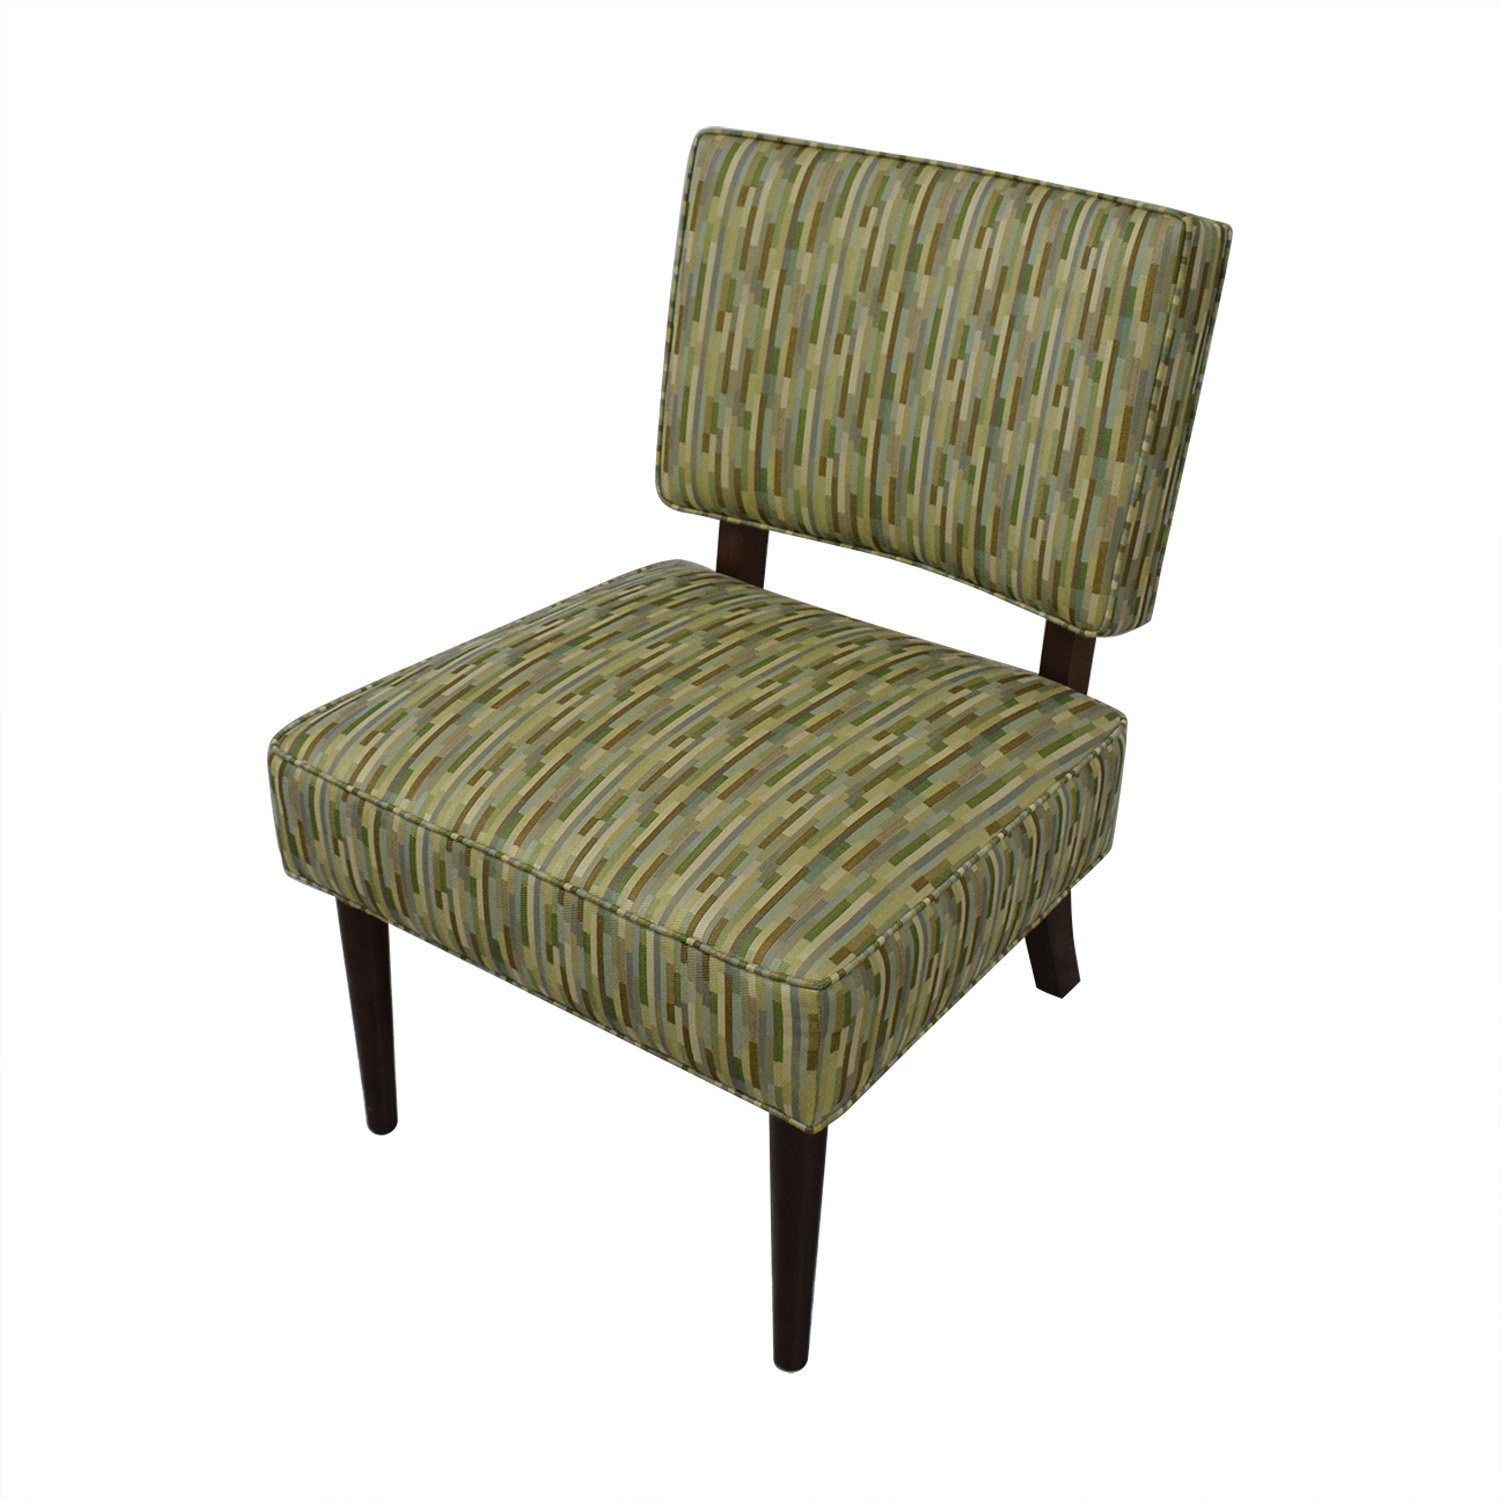 Room & Board Gigi Chairs / Accent Chairs